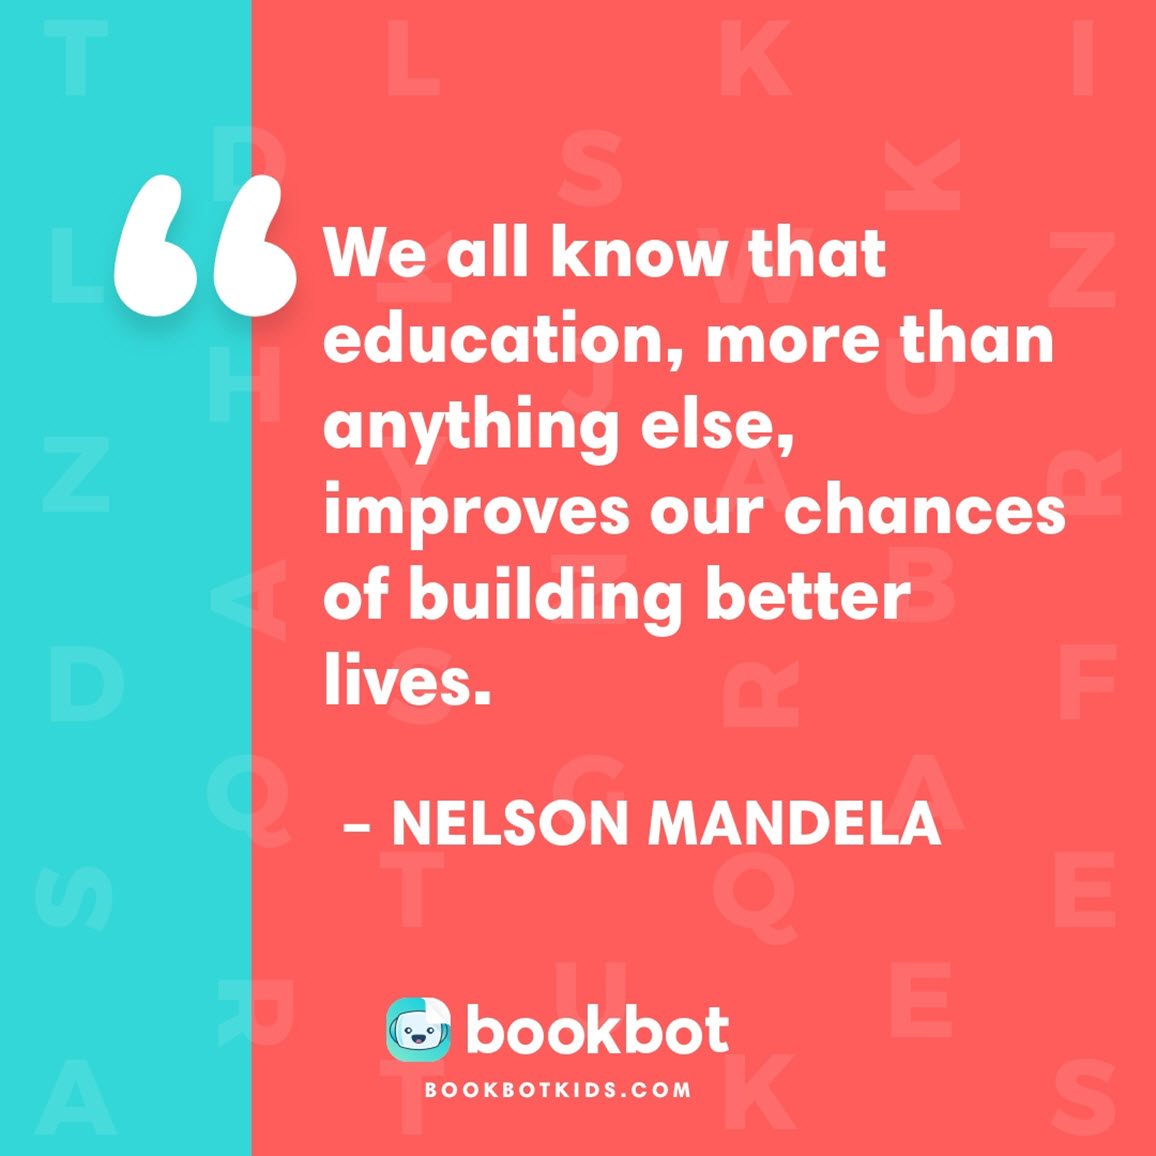 We all know that education, more than anything else, improves our chances of building better lives. – Nelson Mandela